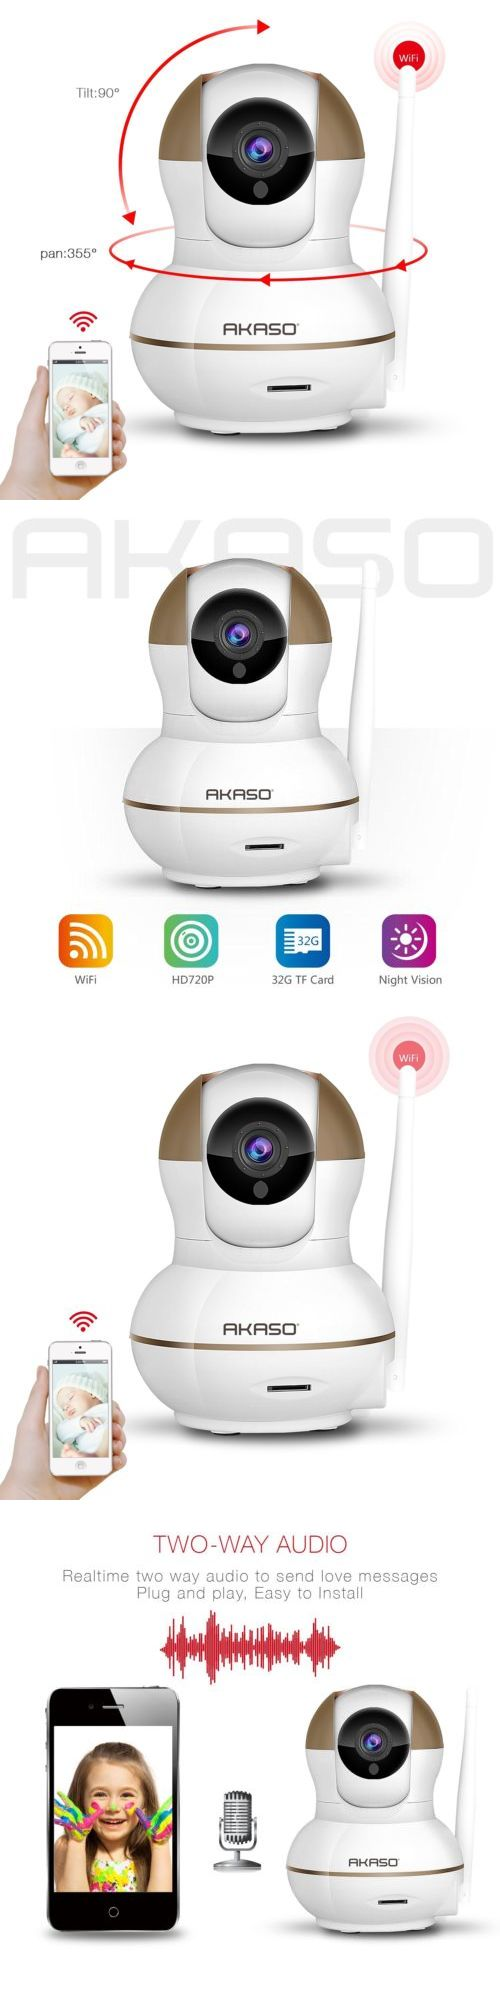 Home Network Security Appliance The 25 Best Wireless Network Ideas On Pinterest Computers